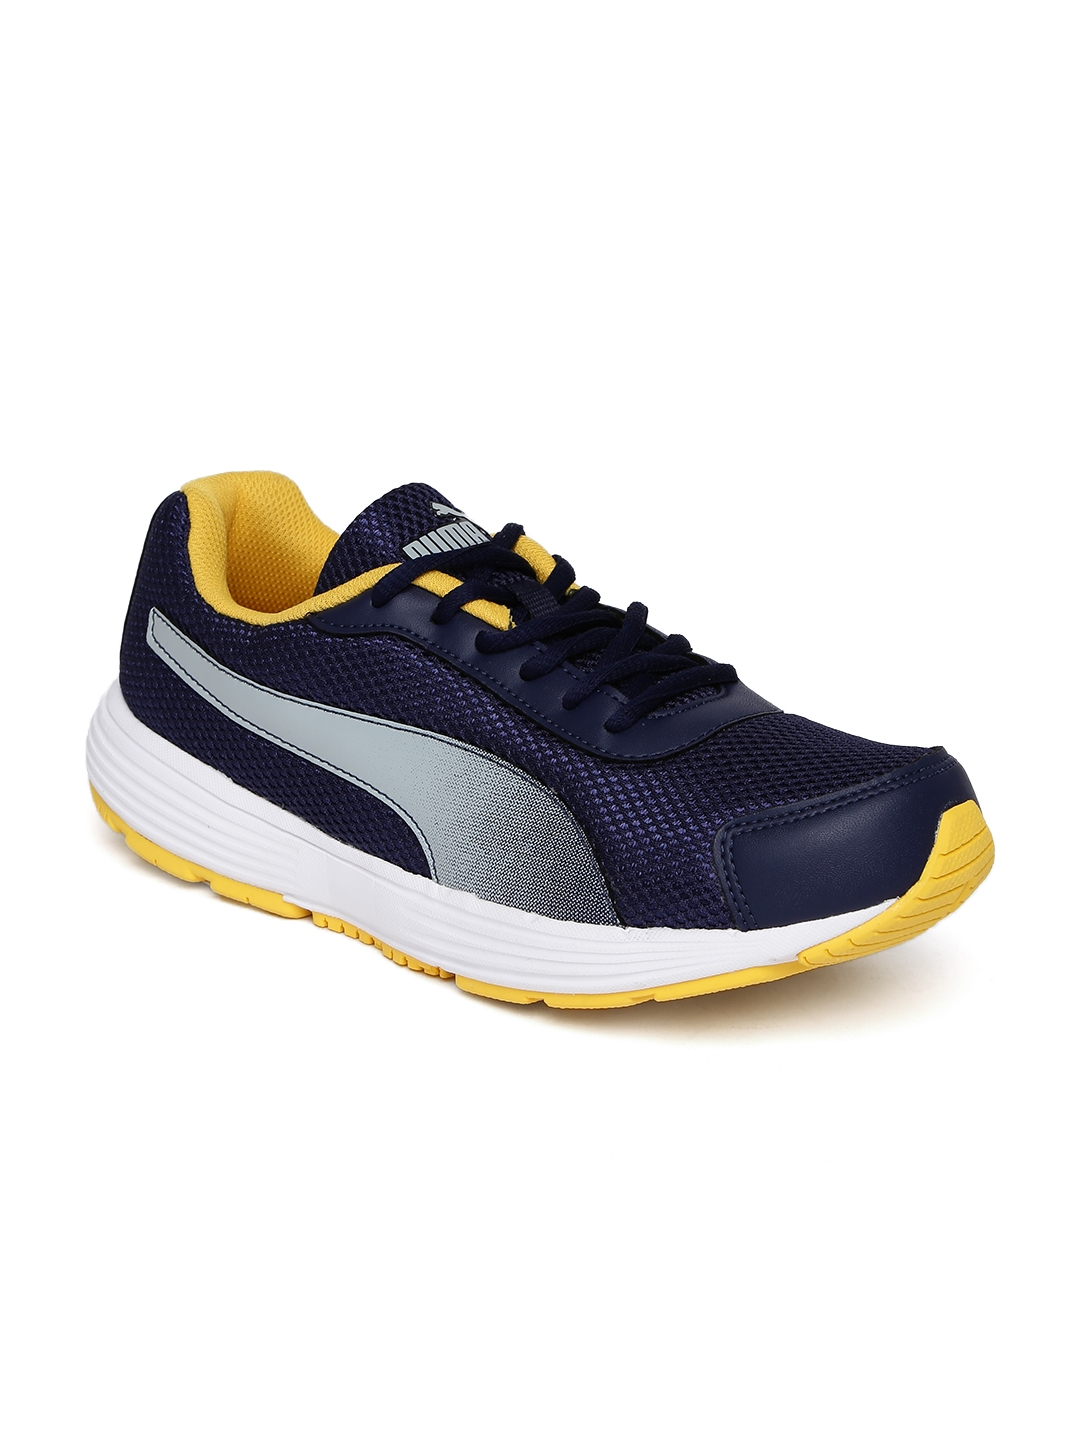 Buy Puma Men Navy Blue Aeden Running Shoes - Sports Shoes for Unisex ... 785a3d557